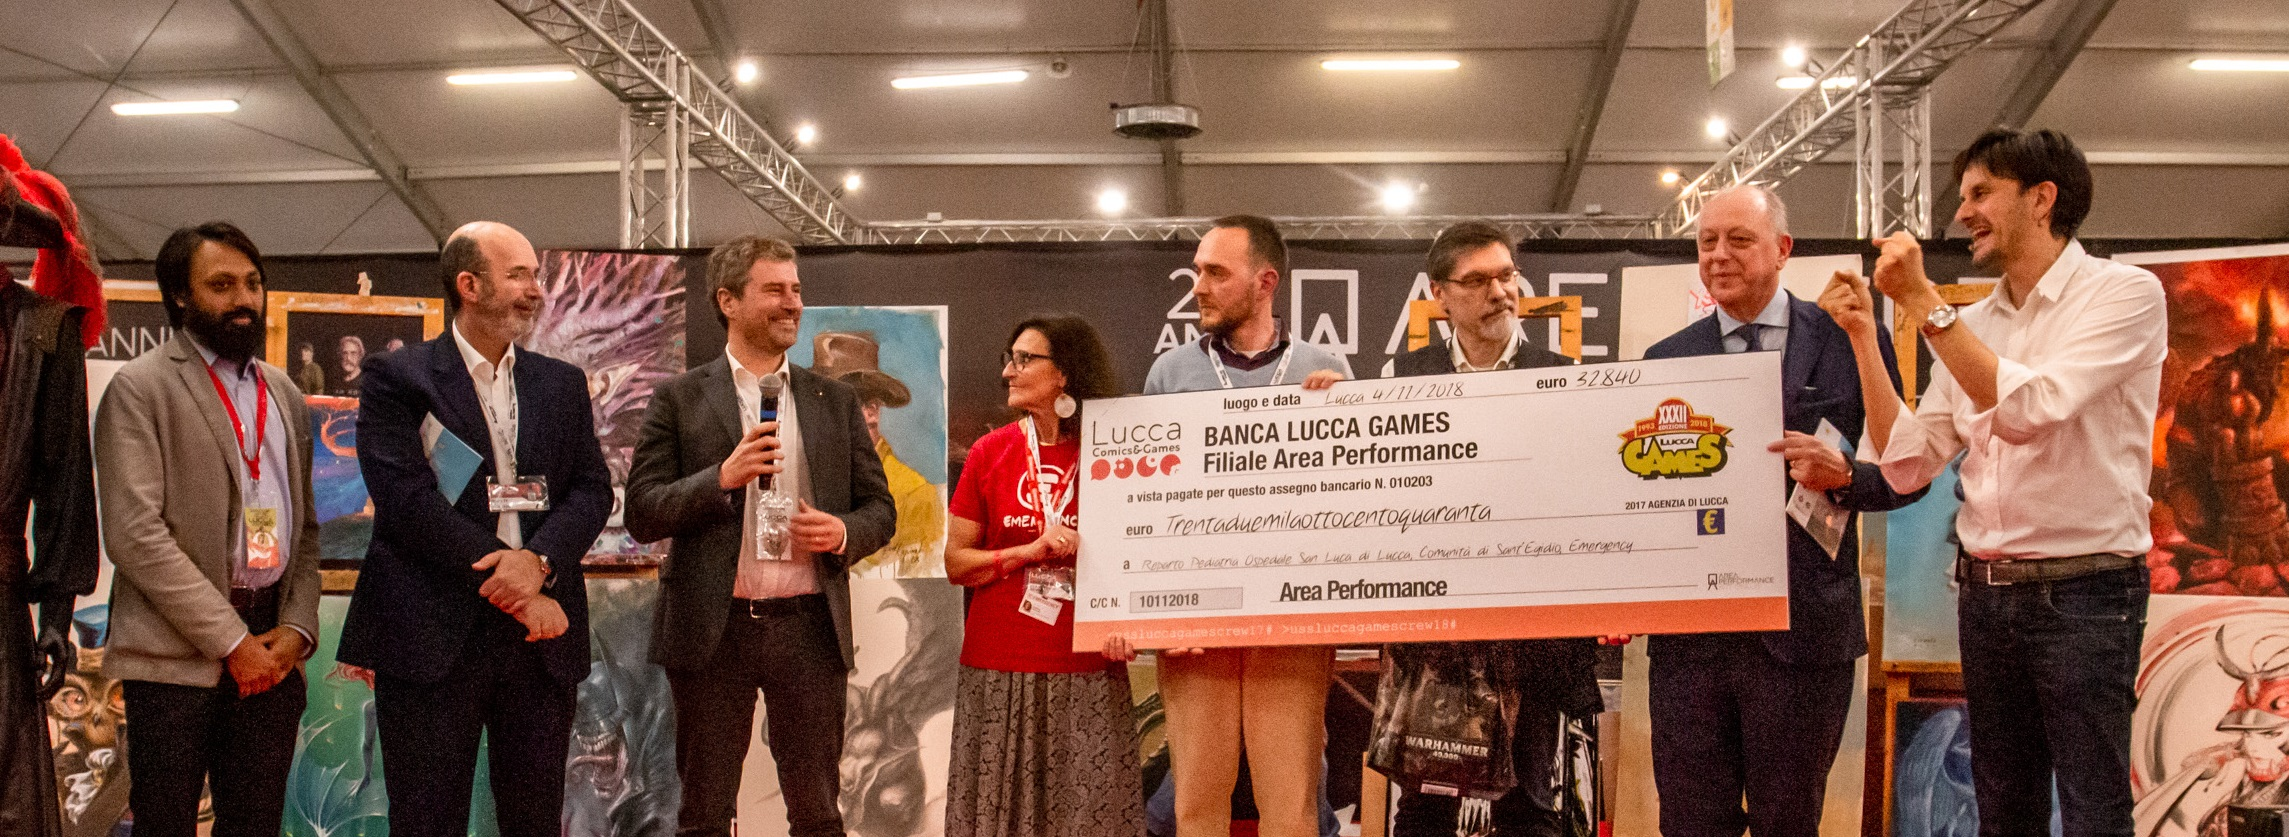 Lucca Comics & Games 2018 Dall'Area Performance Onlus 32.840 euro in beneficenza